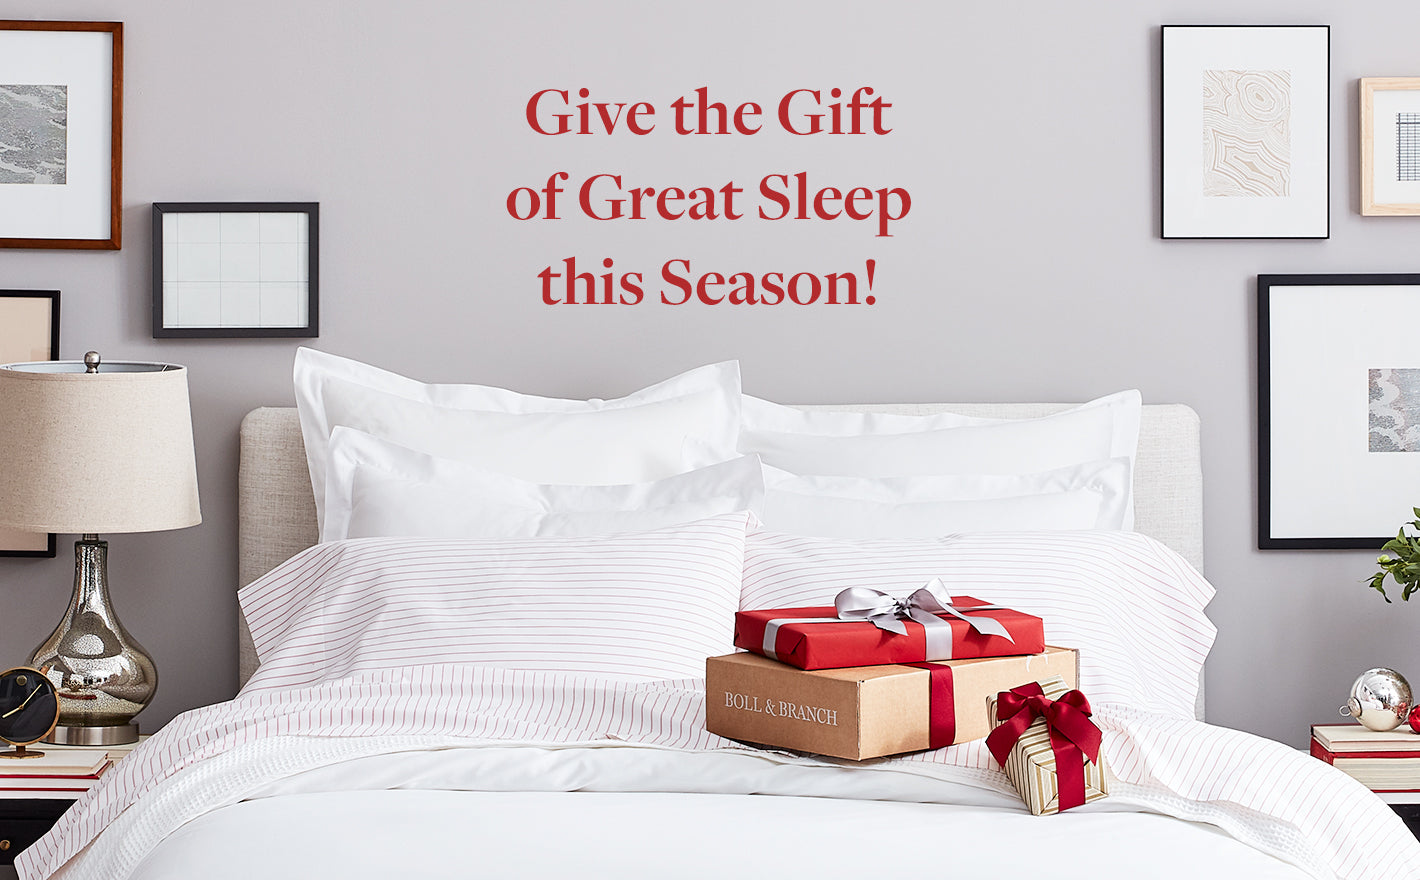 Holiday Gift Guide Product Tile